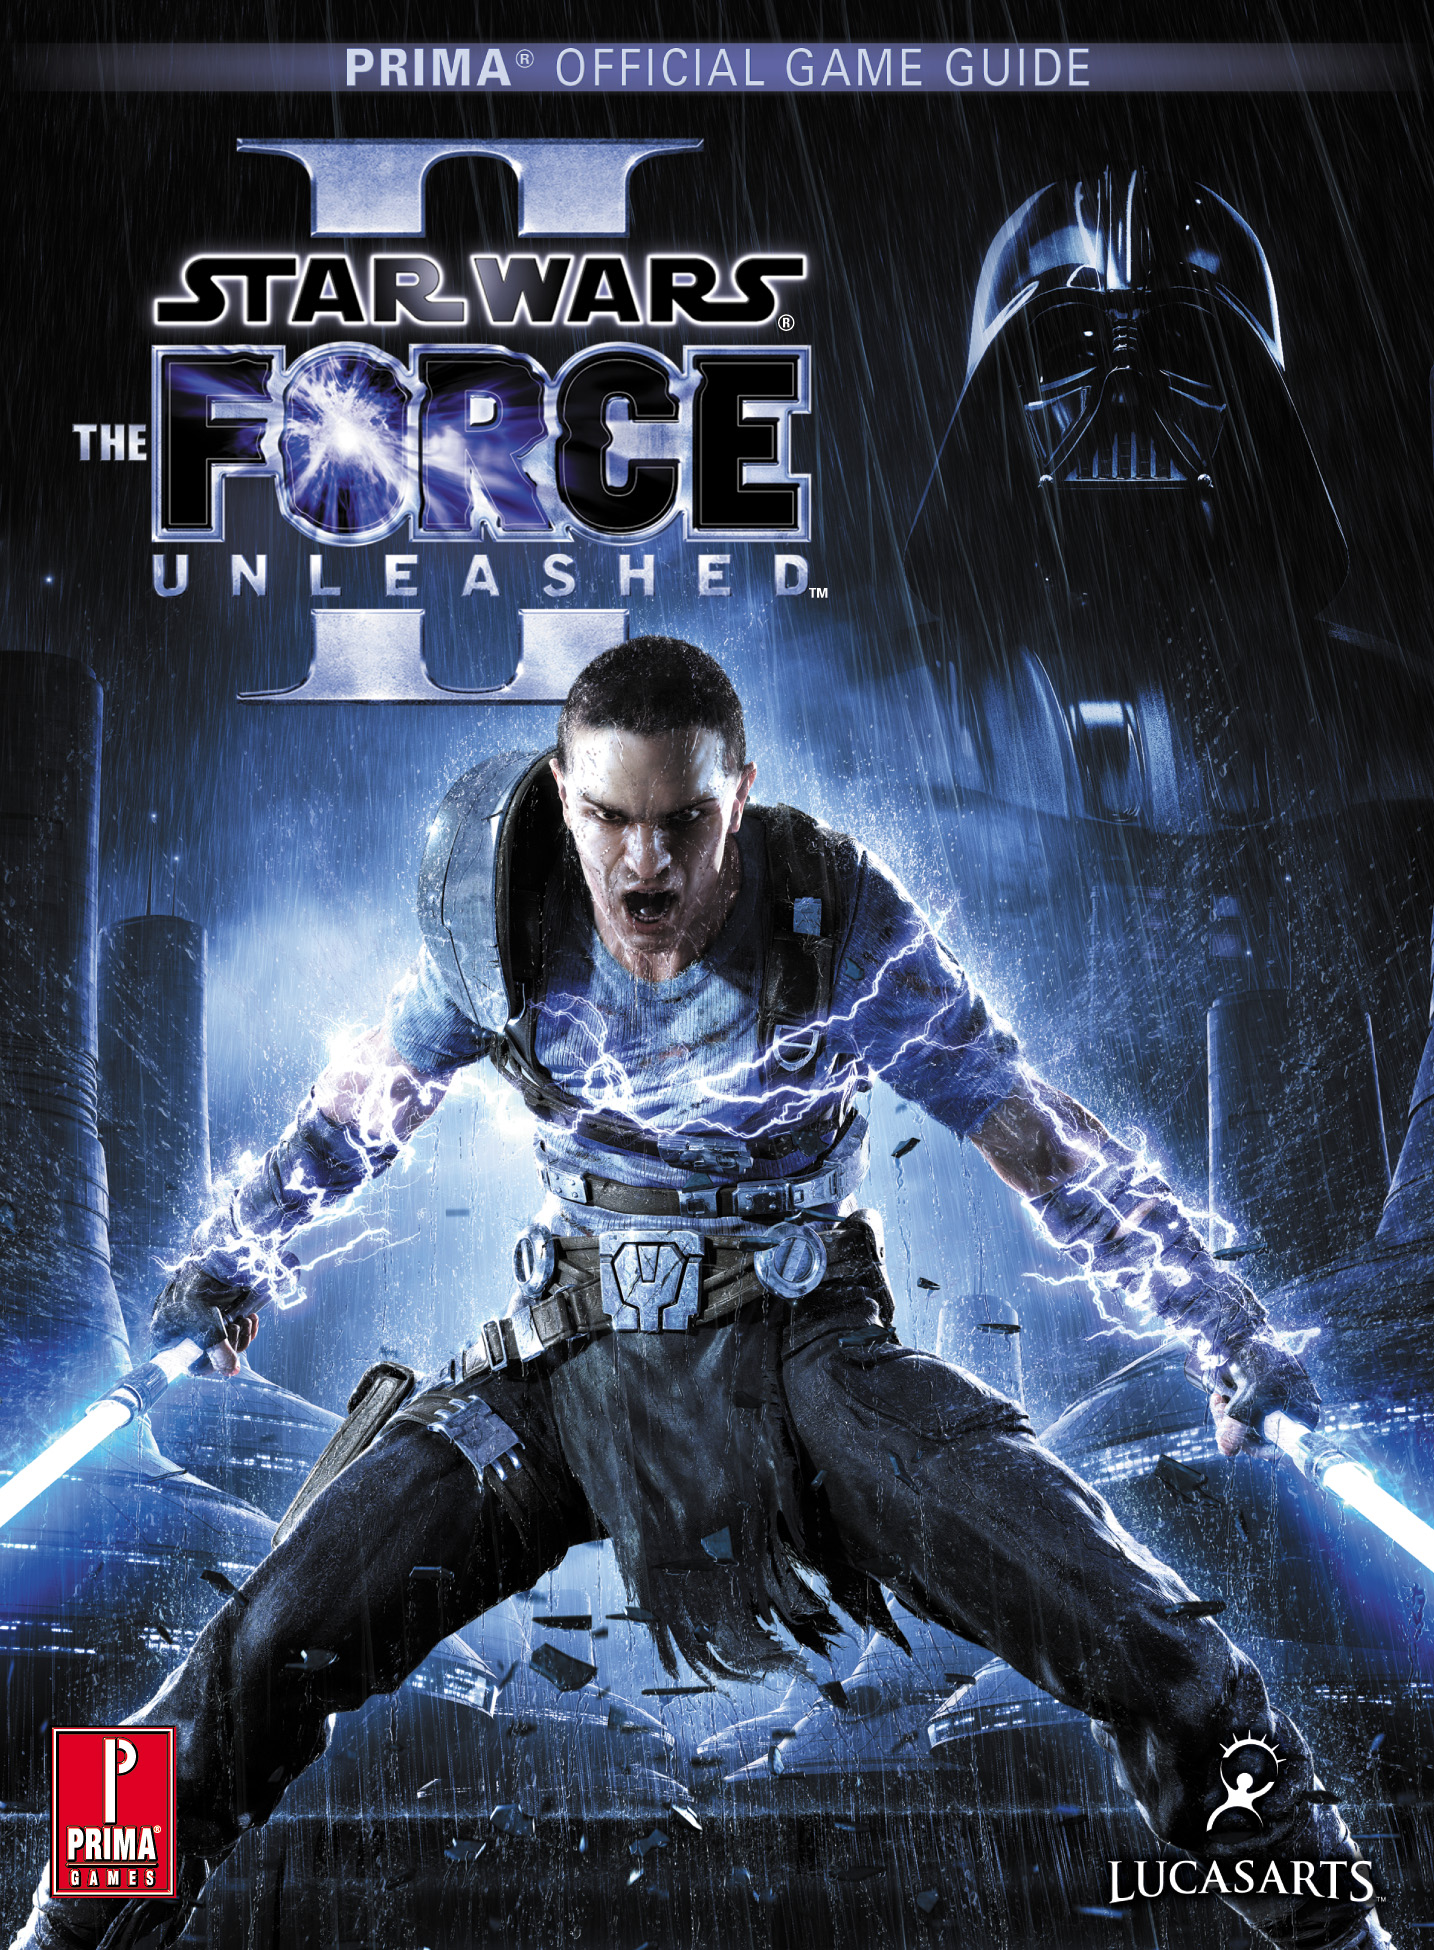 Star Wars: The Force Unleashed II: Prima Official Game Guide